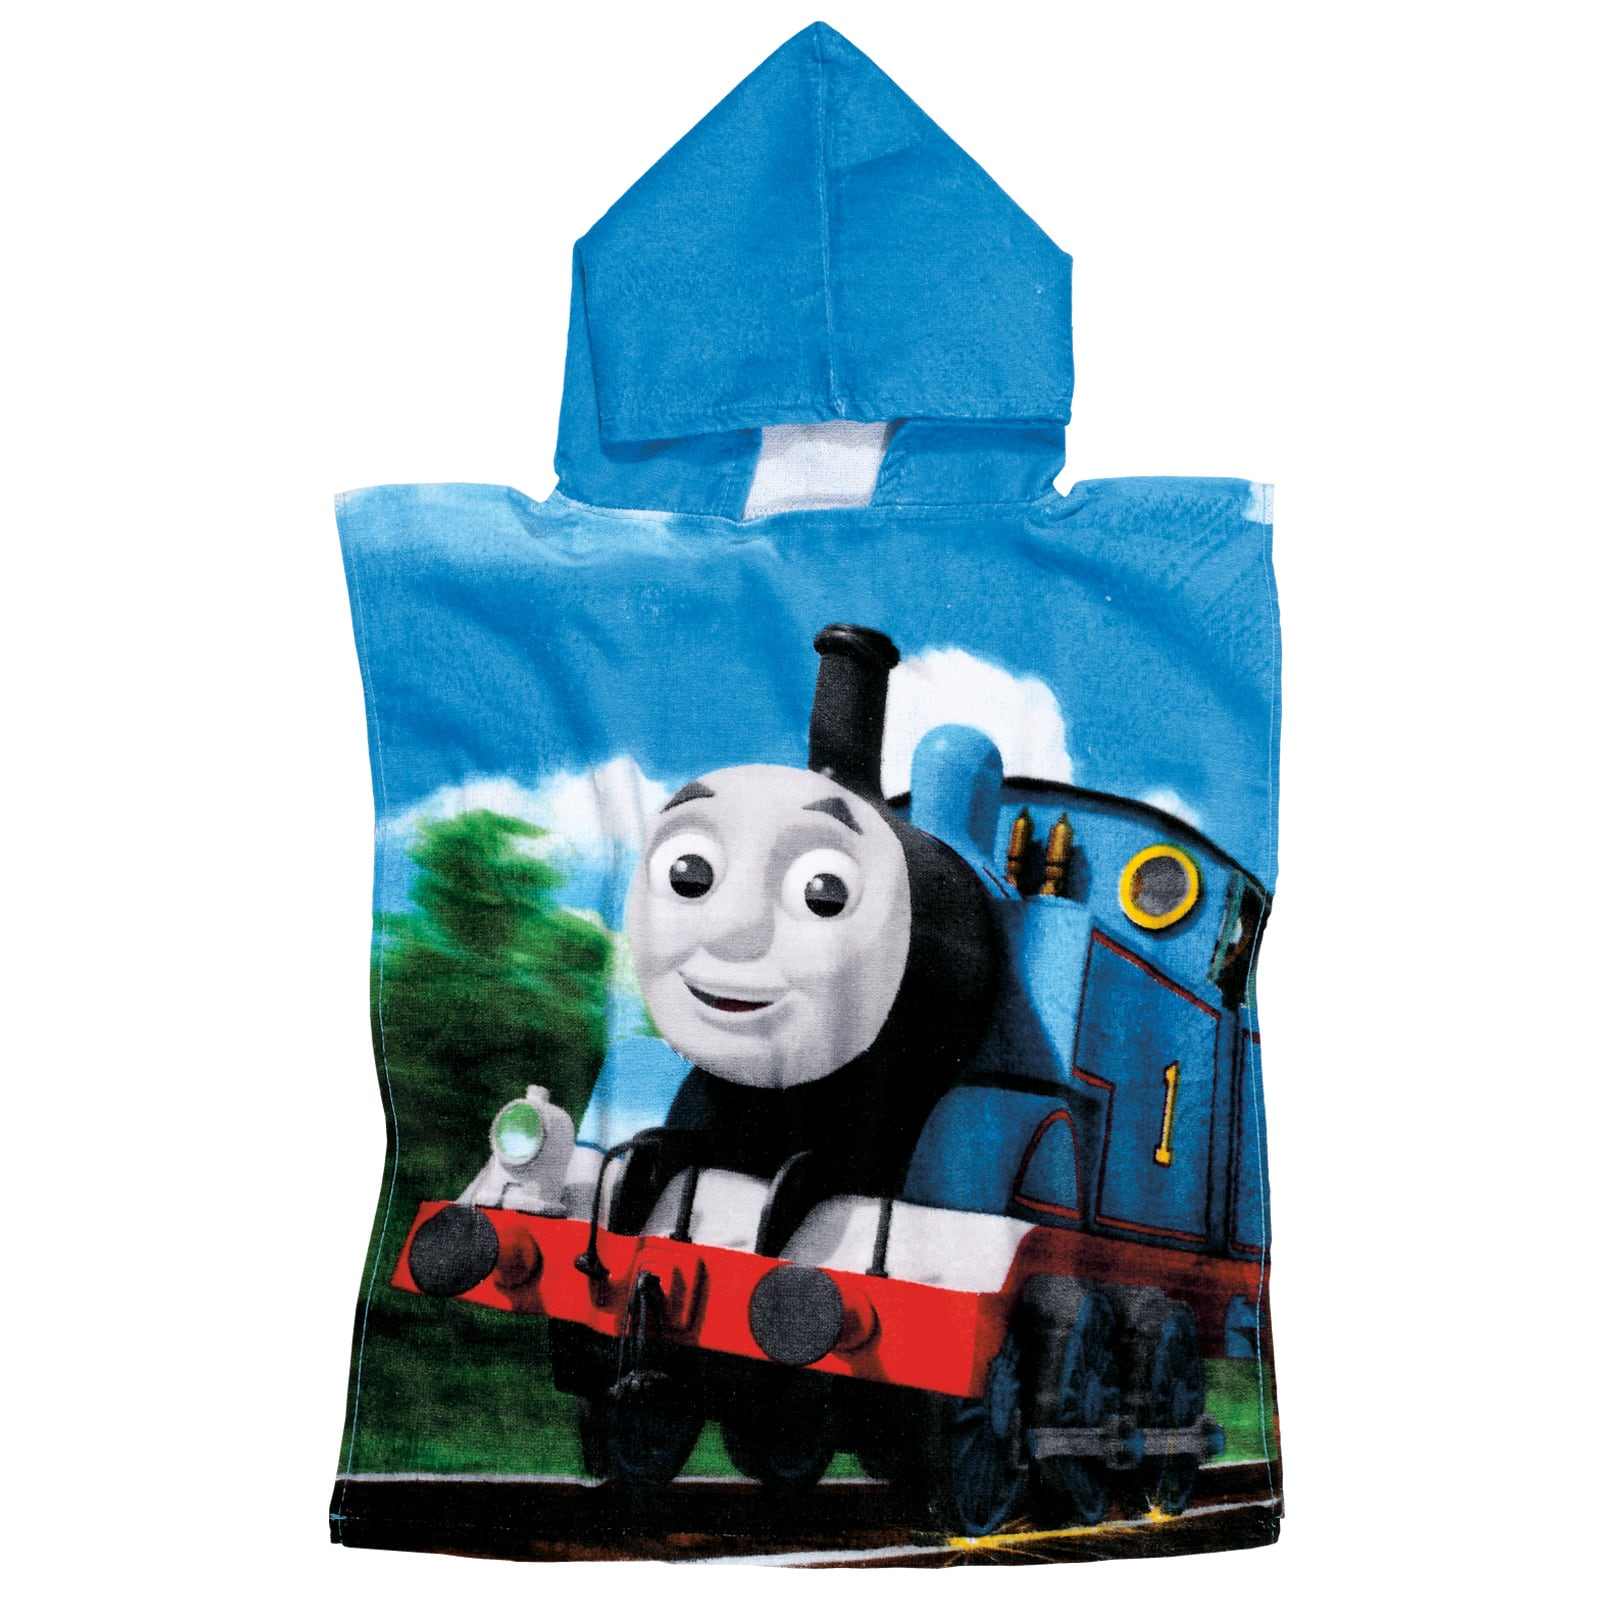 Πόντσο Θαλάσσης 5841 50Χ115 Thomas & Friends Light Blue-Green Cartoon Kids 0-2 ετών 50x115cm